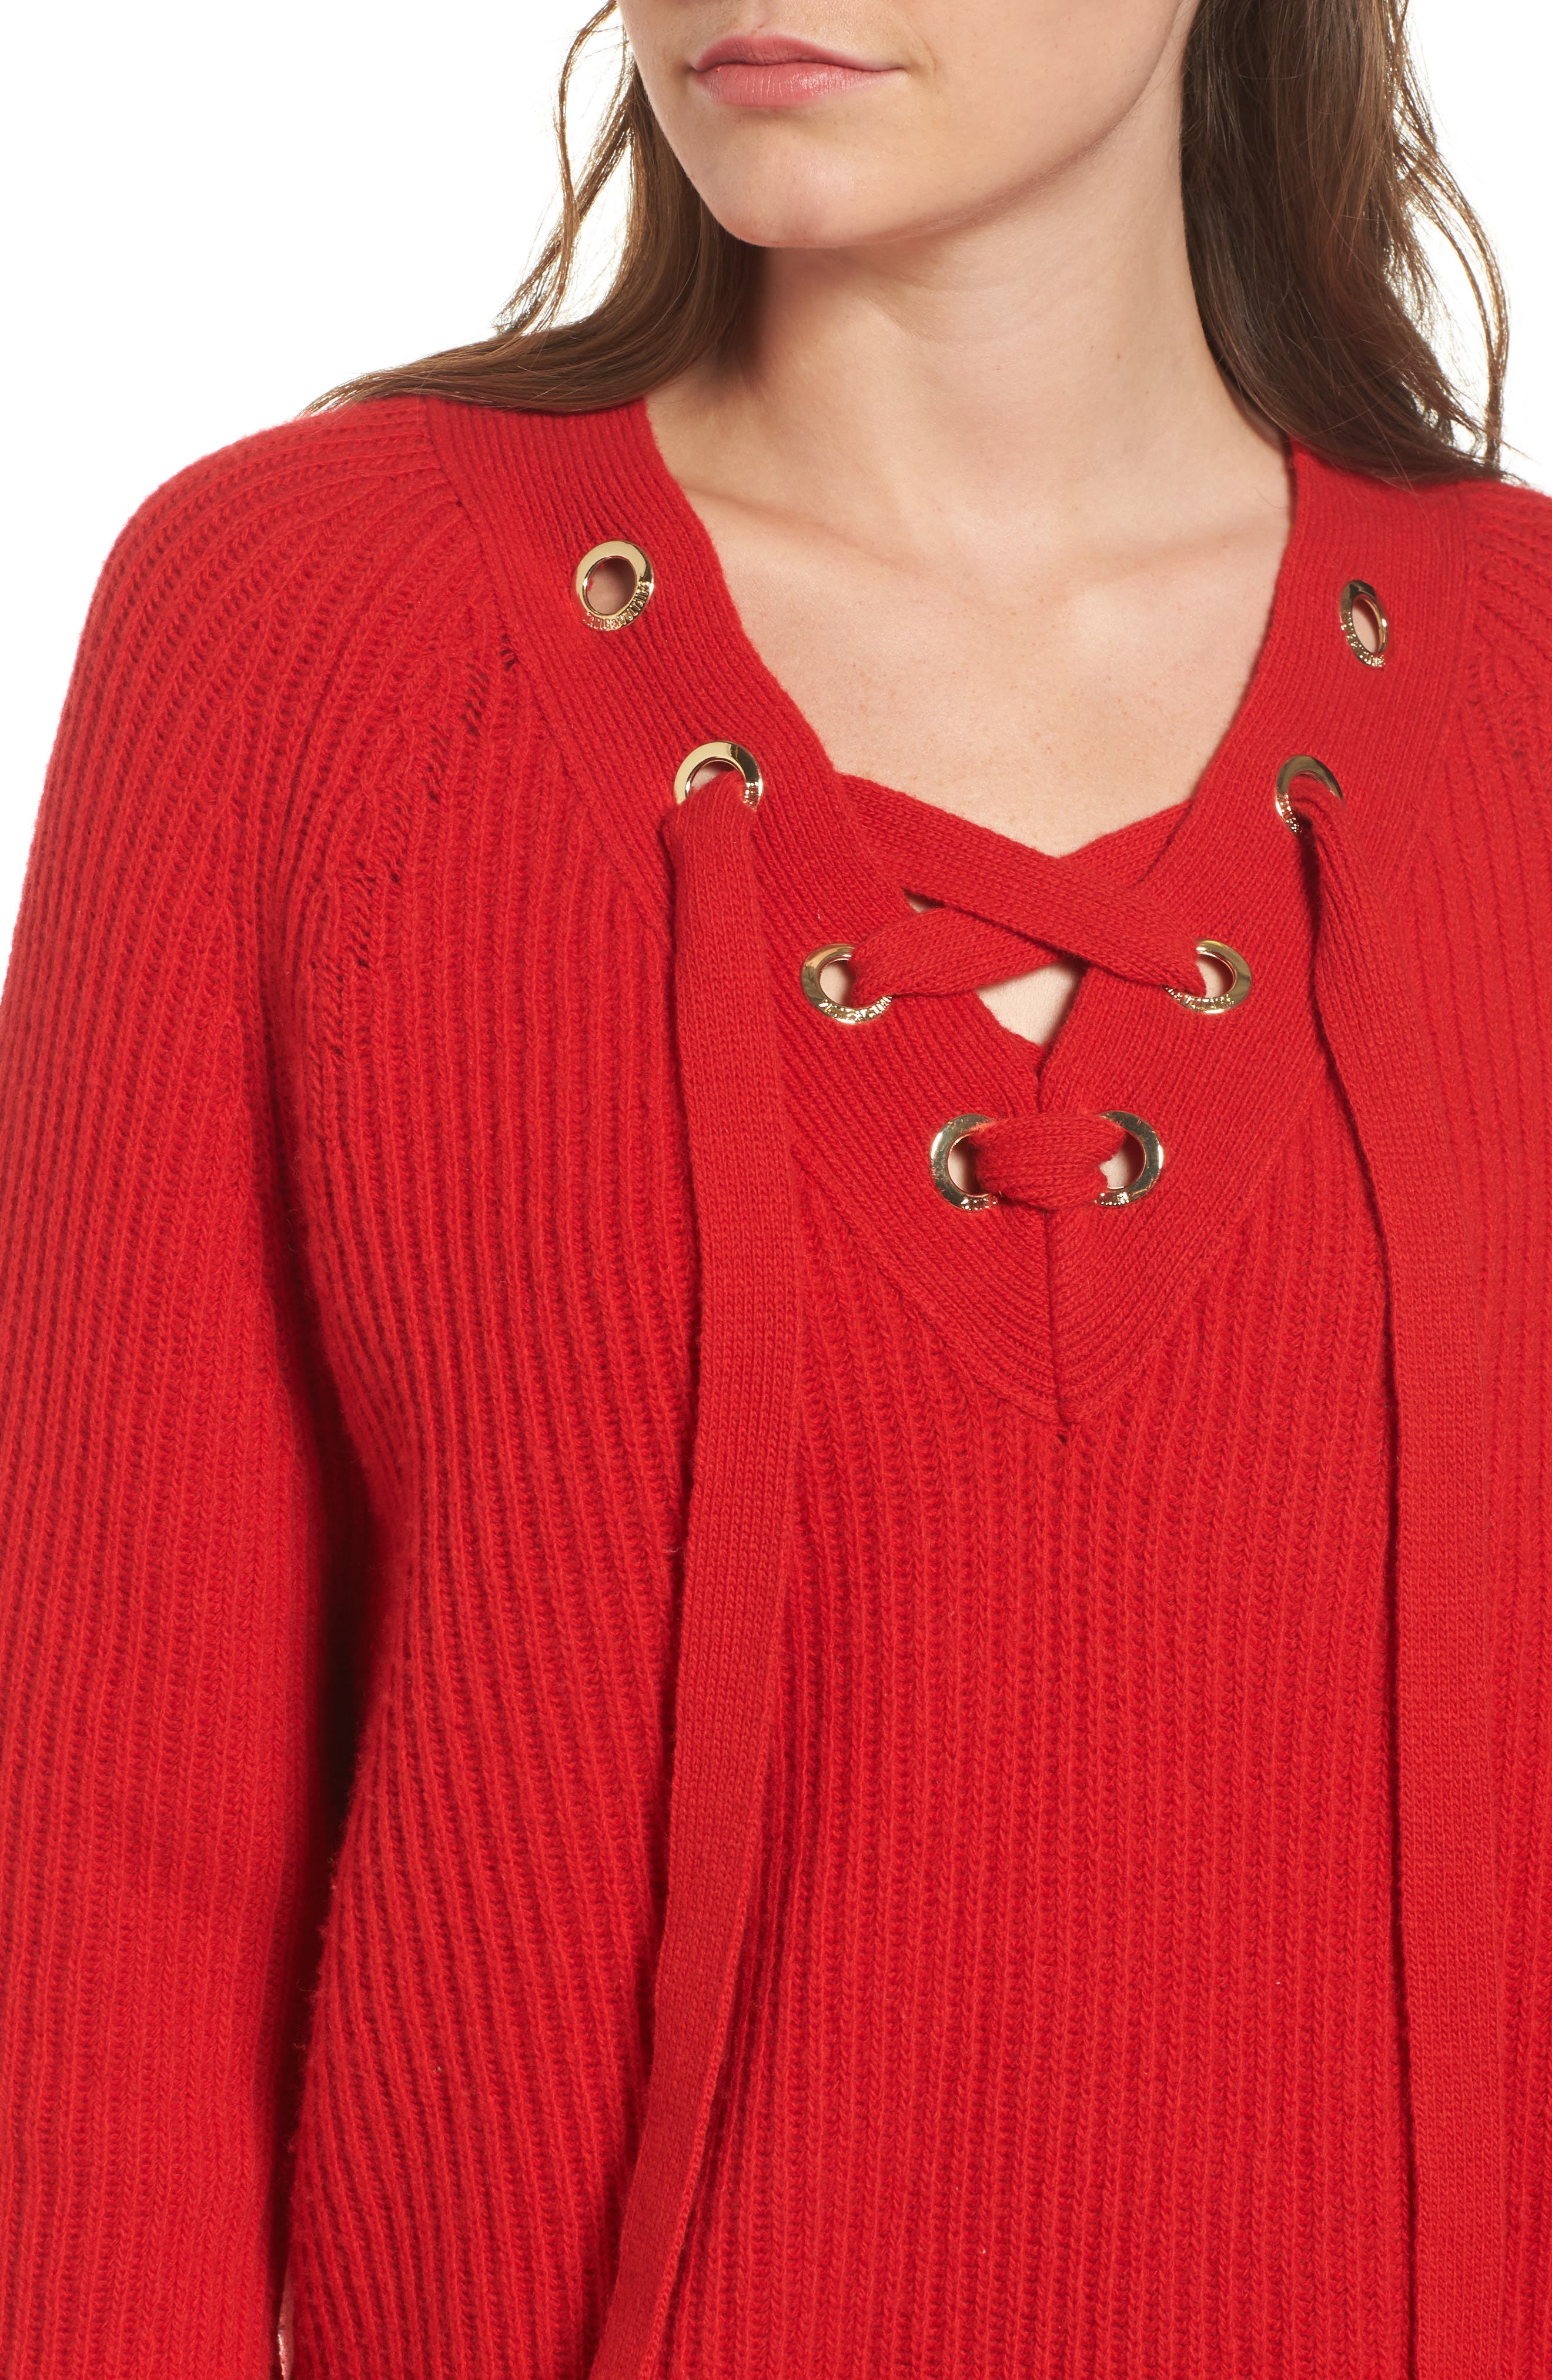 Kassy Wool Blend Sweater,                             Alternate thumbnail 4, color,                             Rouge